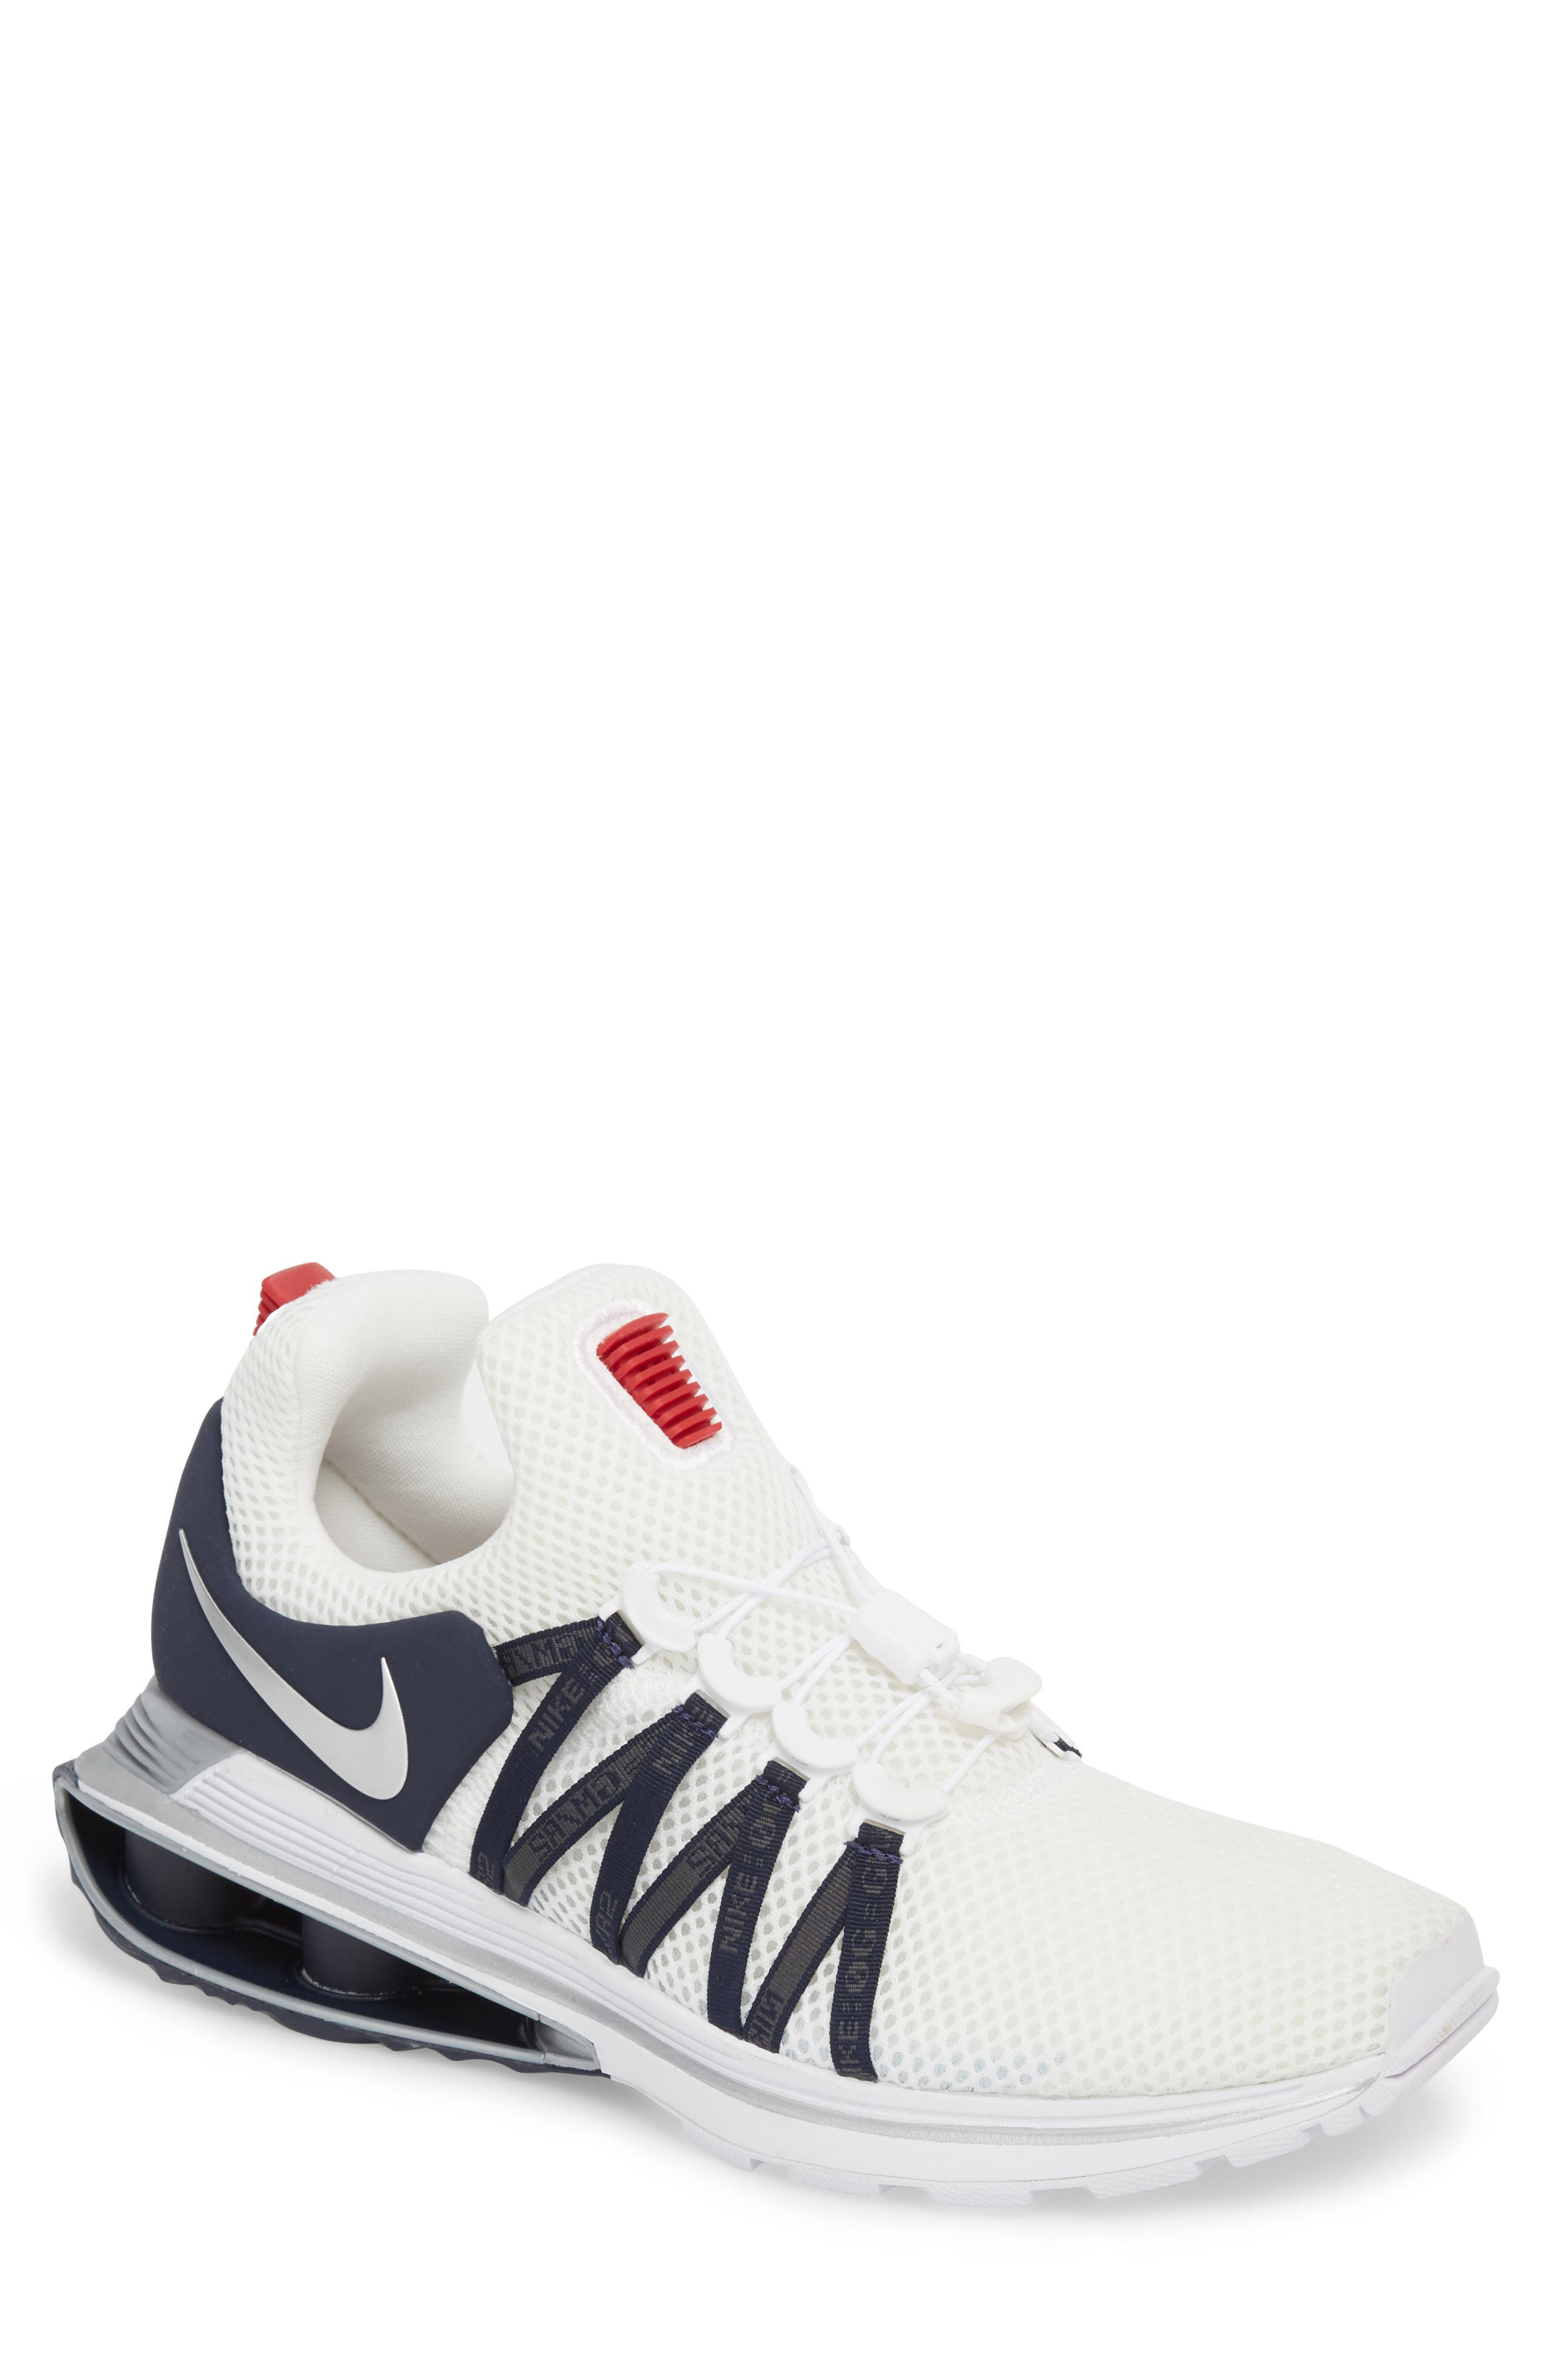 Shox Gravity Sneaker,                         Main,                         color, WHITE/ METALLIC SILVER